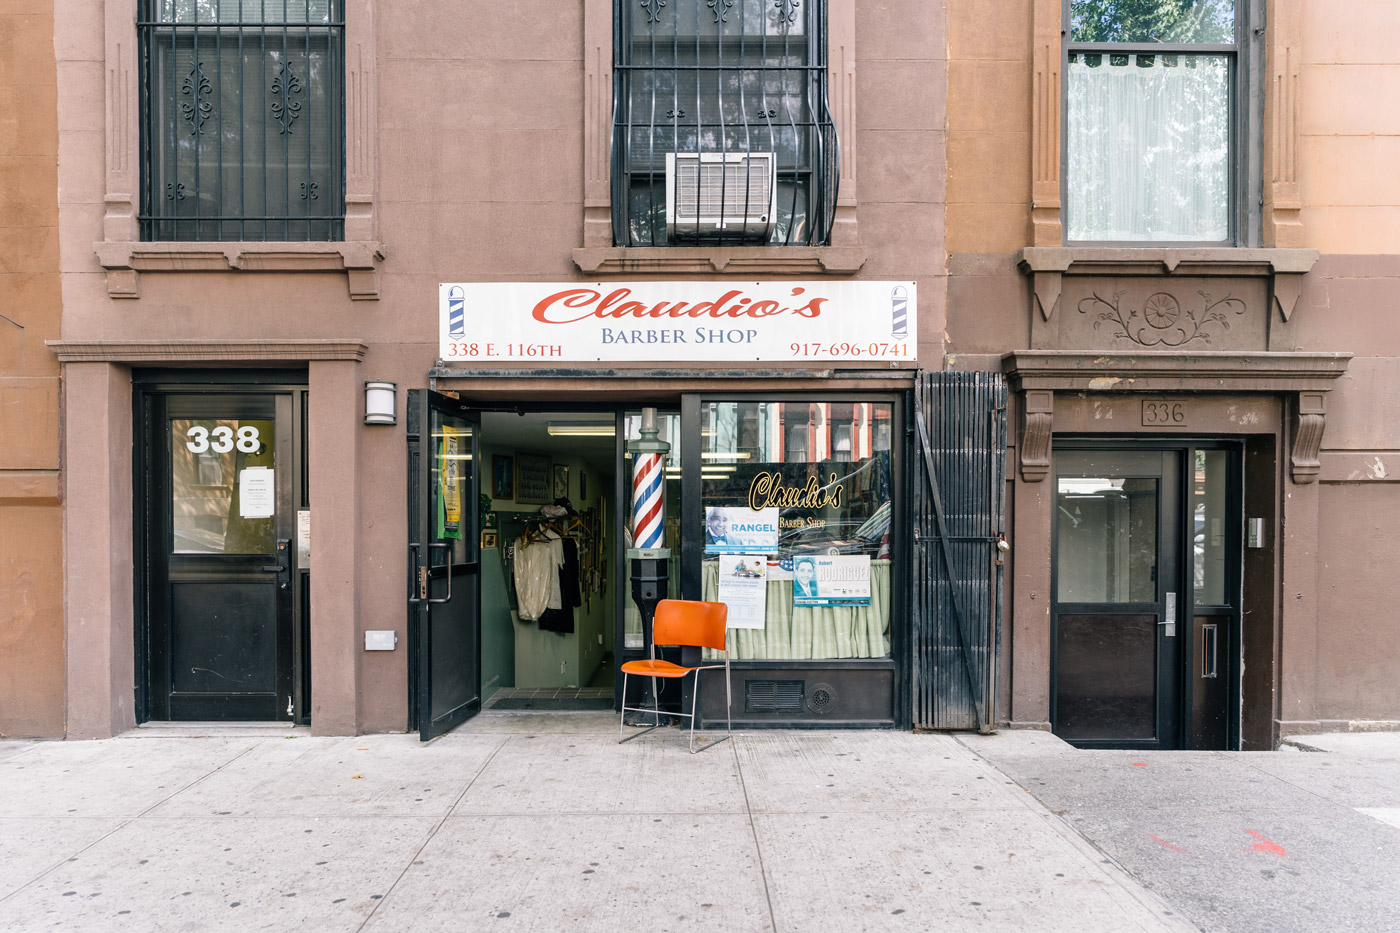 Claudio's Barber Shop at 338 E. 116th Street in East Harlem